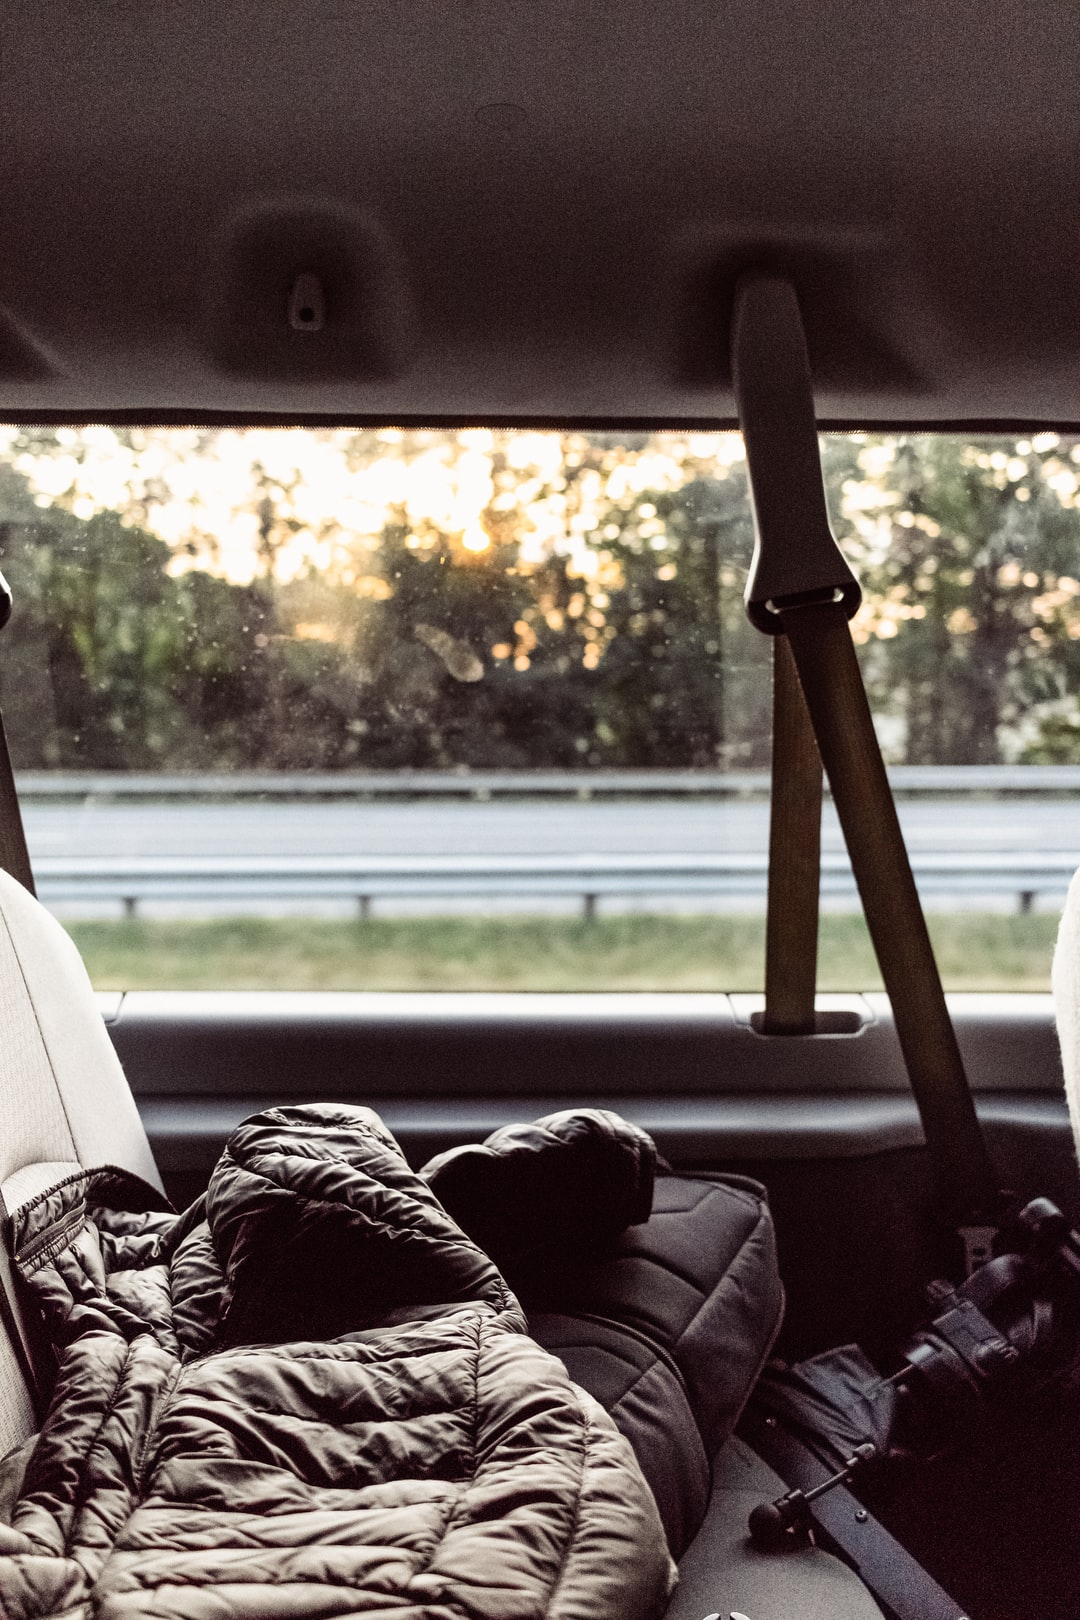 A group of friends and I woke up early to head to Atlanta for a shoot. It was early in the morning and we had been driving for an hour. I just wanted to capture the feeling of the moment, feeling like it mattered.